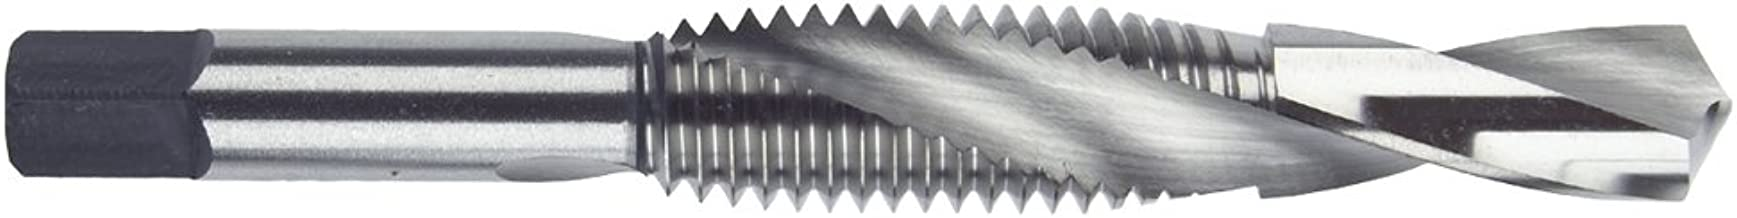 H4 Pitch Diameter Limit 5//16-24 Size Morse Cutting Tools 38615 Combined Tap and Drill Bright Finish High-Speed Steel